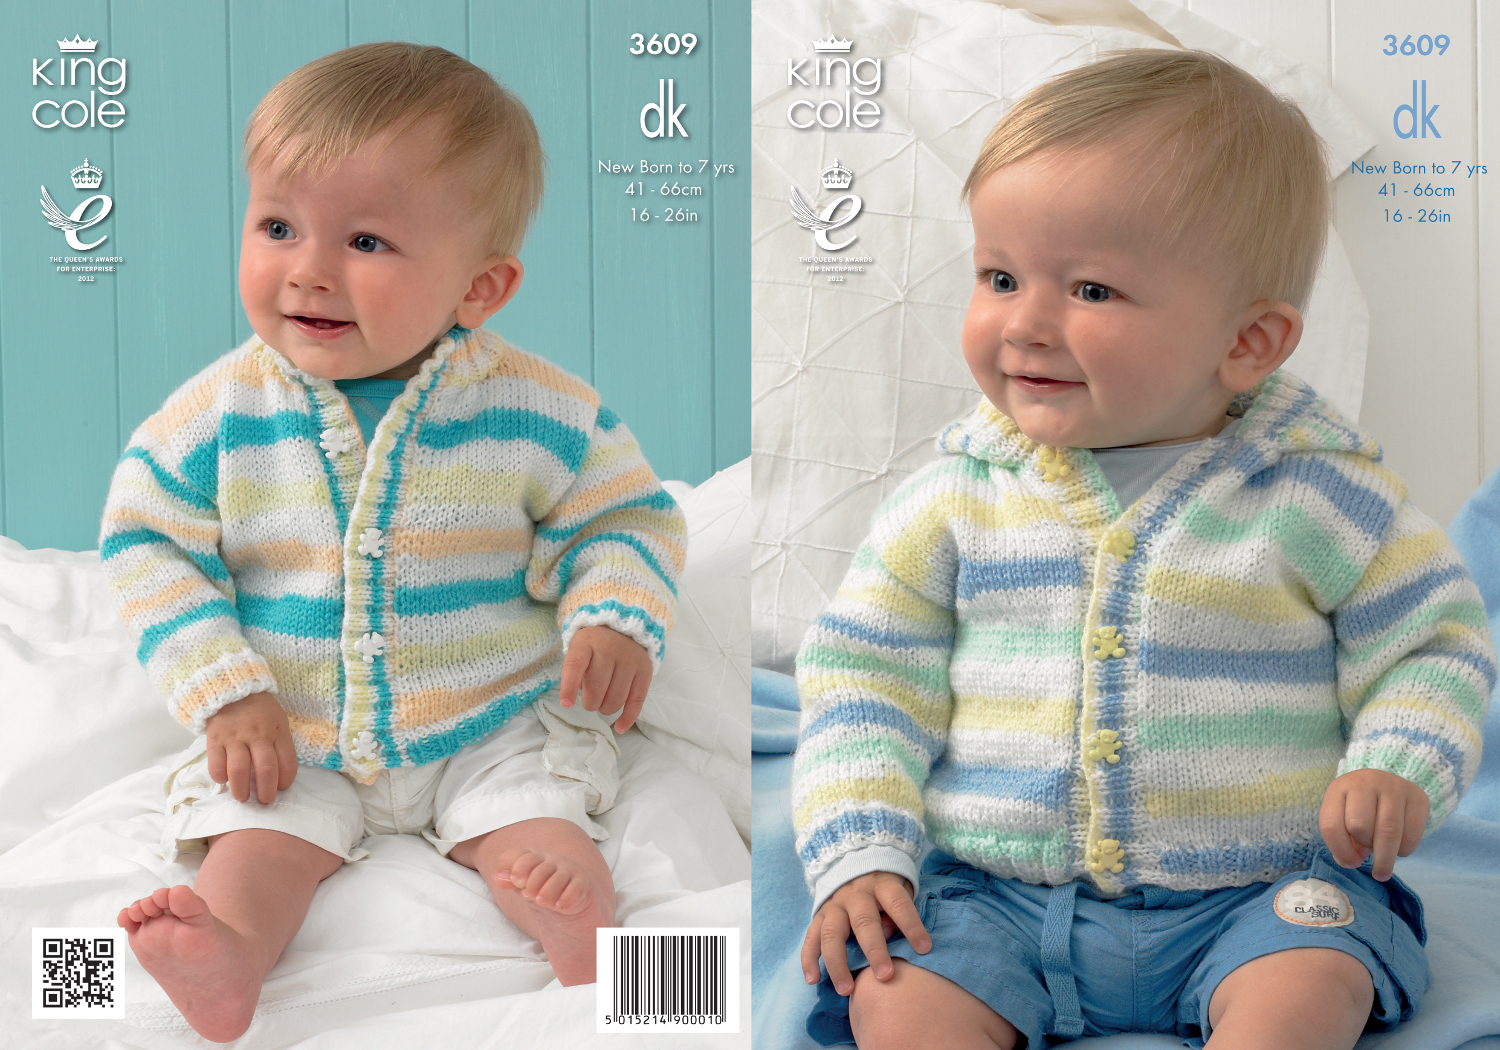 King cole baby double knitting pattern striped hooded round neck king cole baby double knitting pattern striped hooded round neck cardigan 3609 bankloansurffo Choice Image